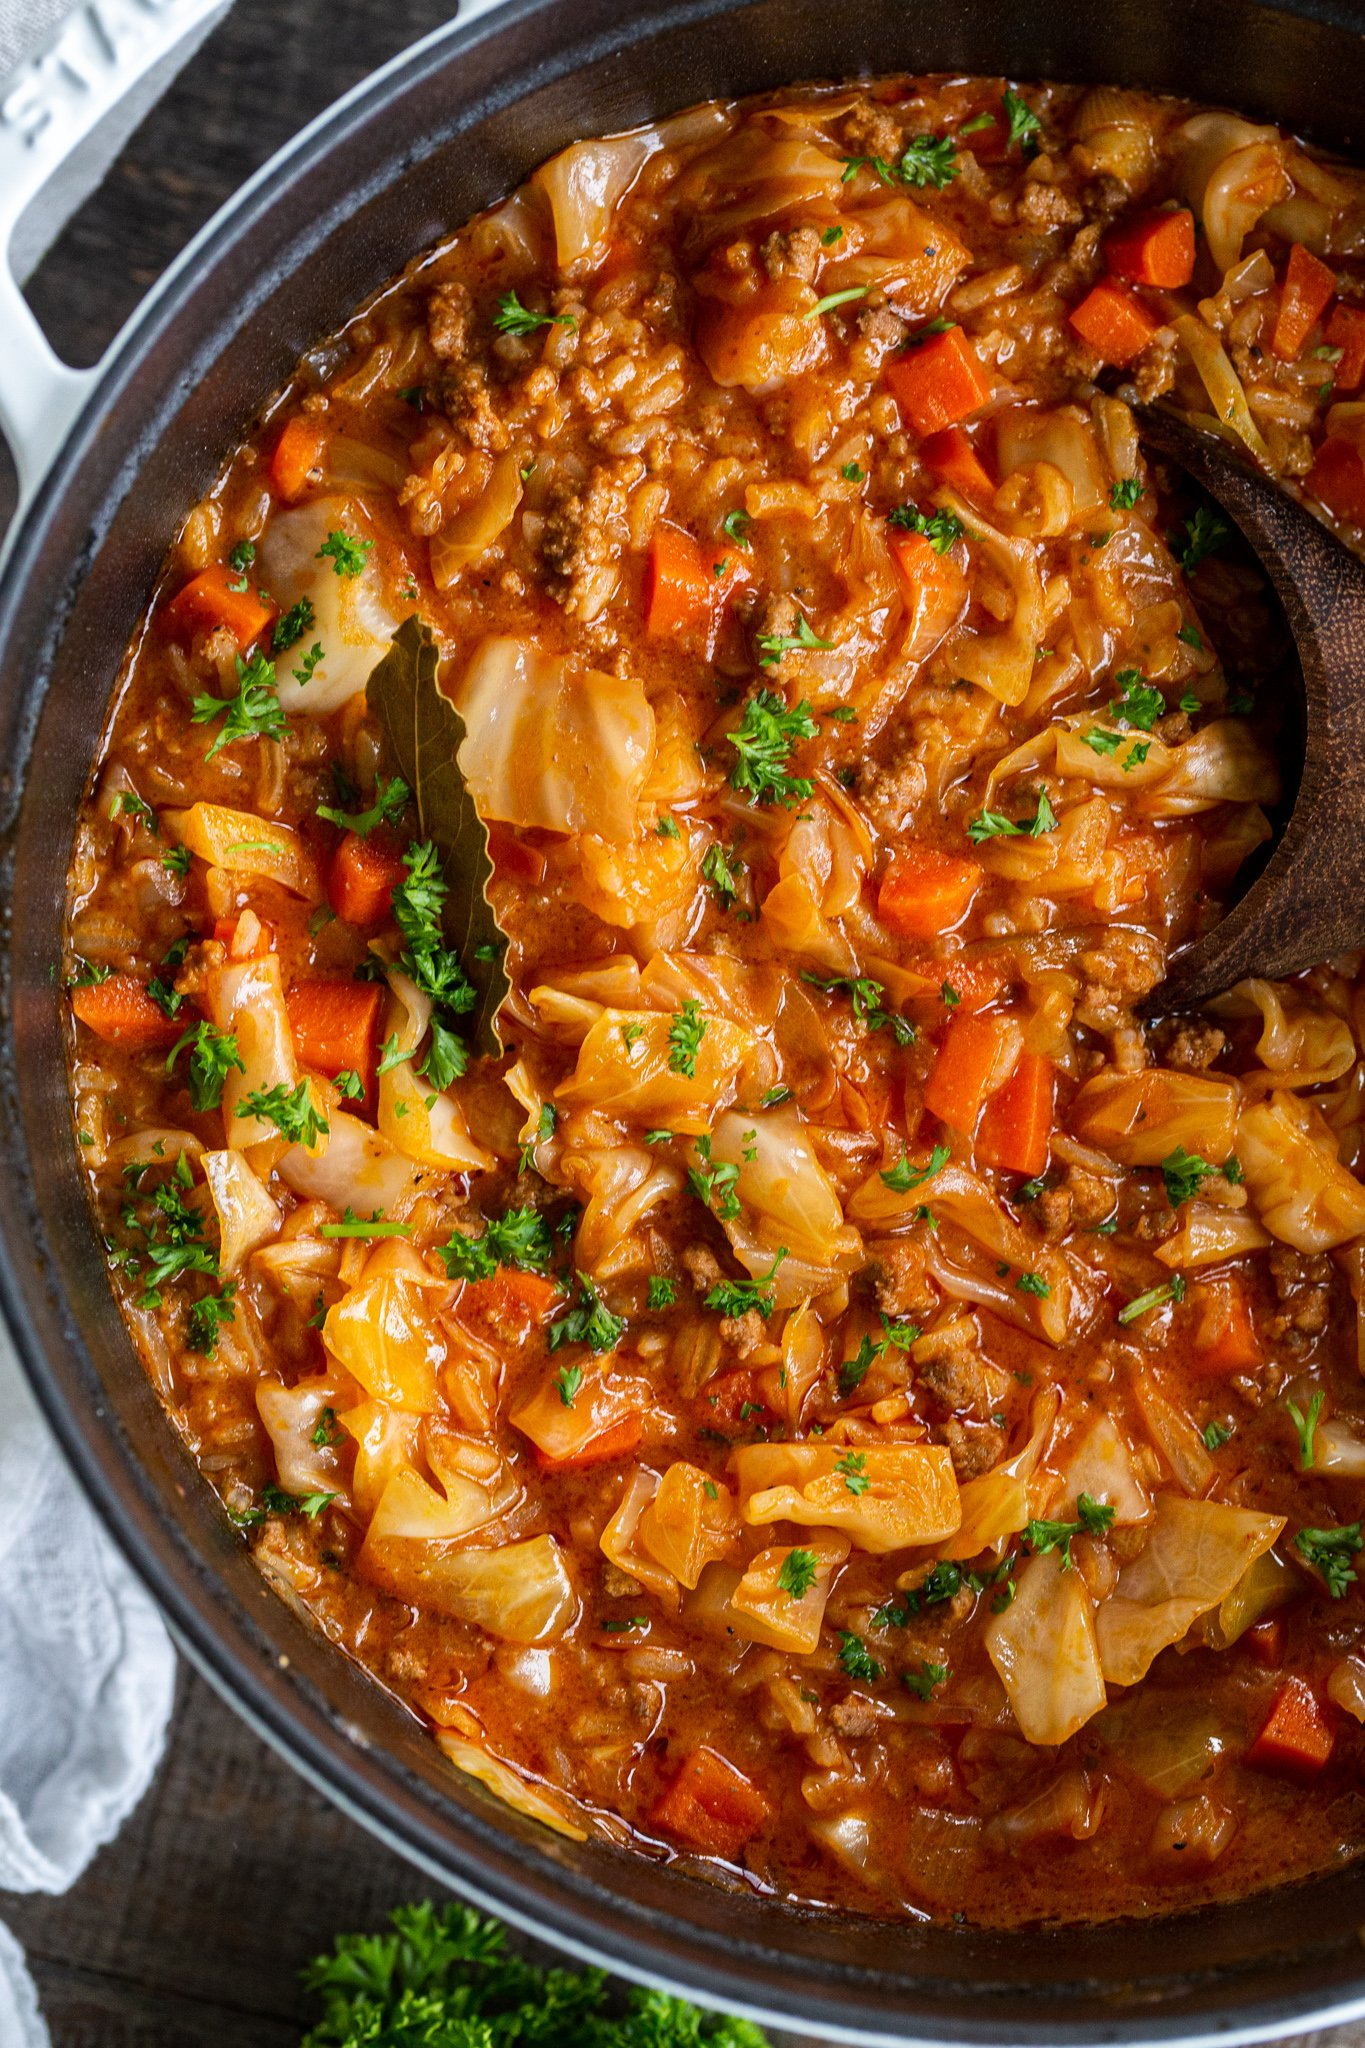 Cabbage Rolls soup in a pot